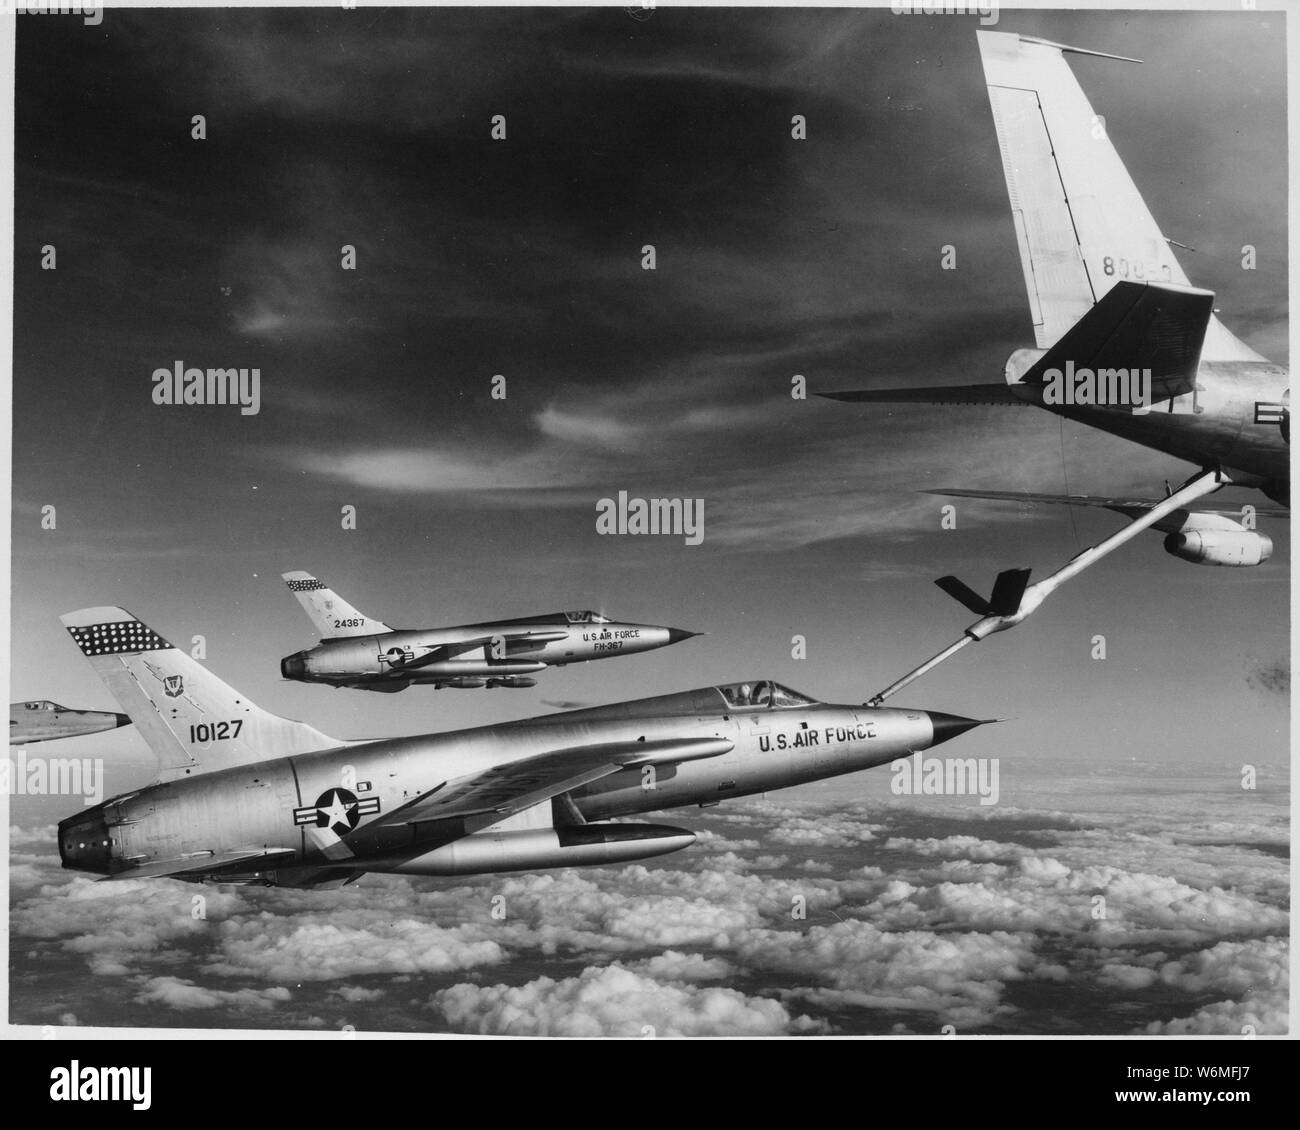 Pilots Refueling Stock Photos & Pilots Refueling Stock Images - Alamy